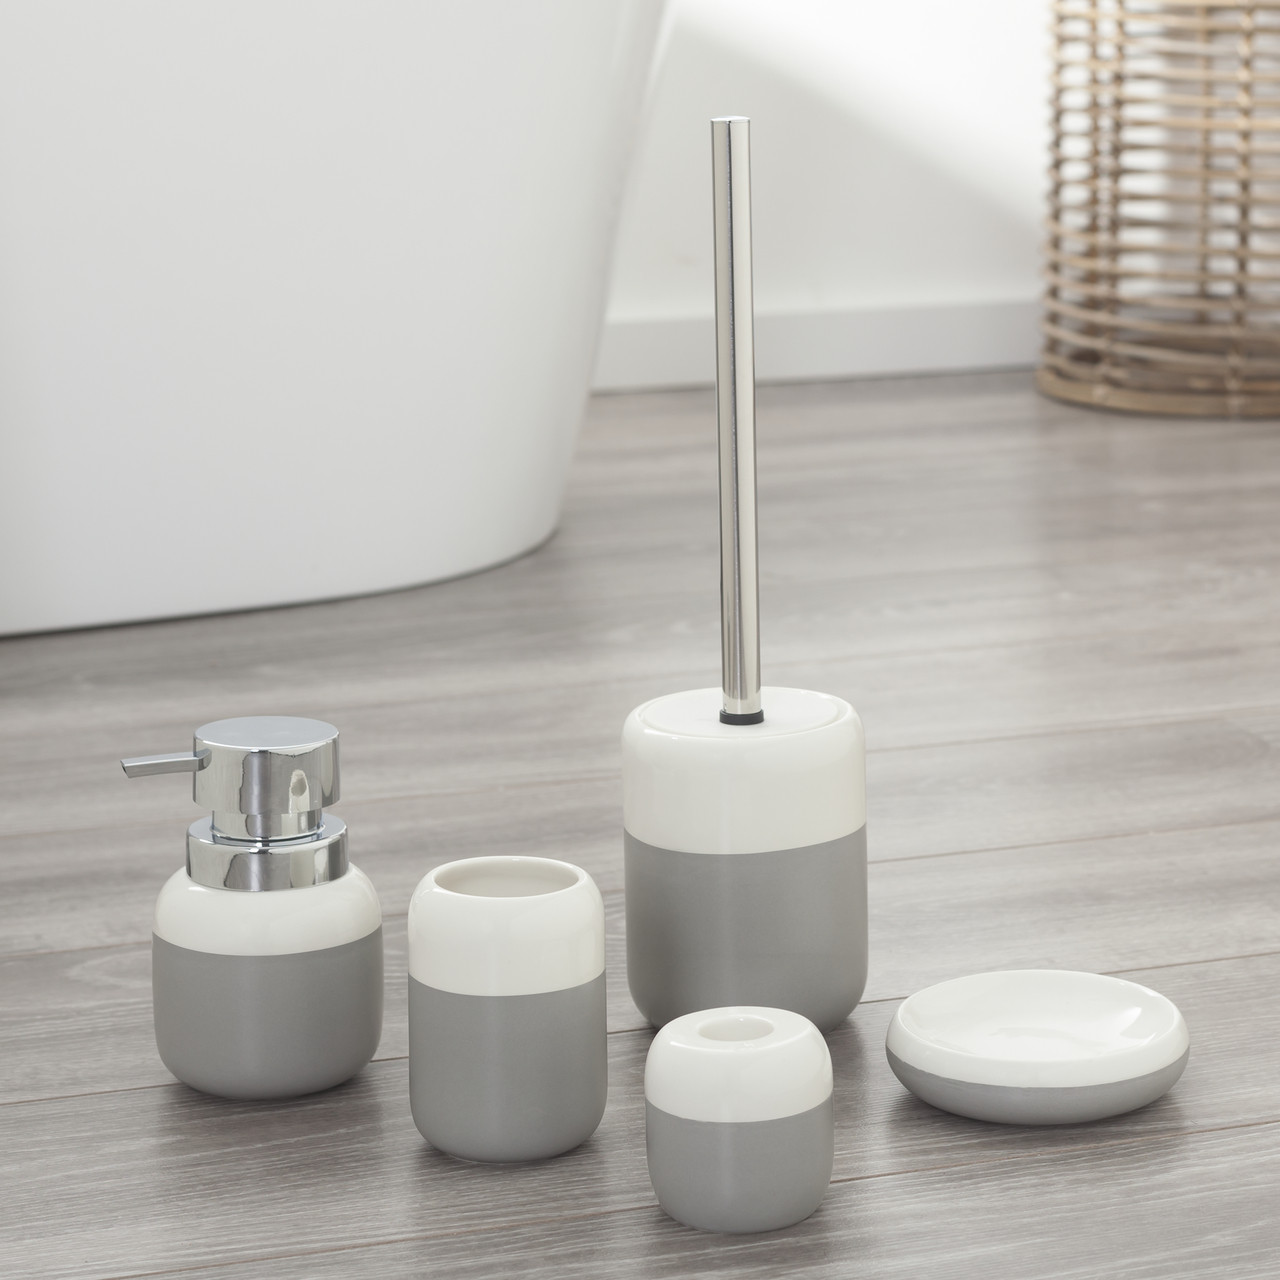 Bathroom Accessories 5 Piece Bathroom Accessories Set Sealskin Sphere Gray And White Porcelain